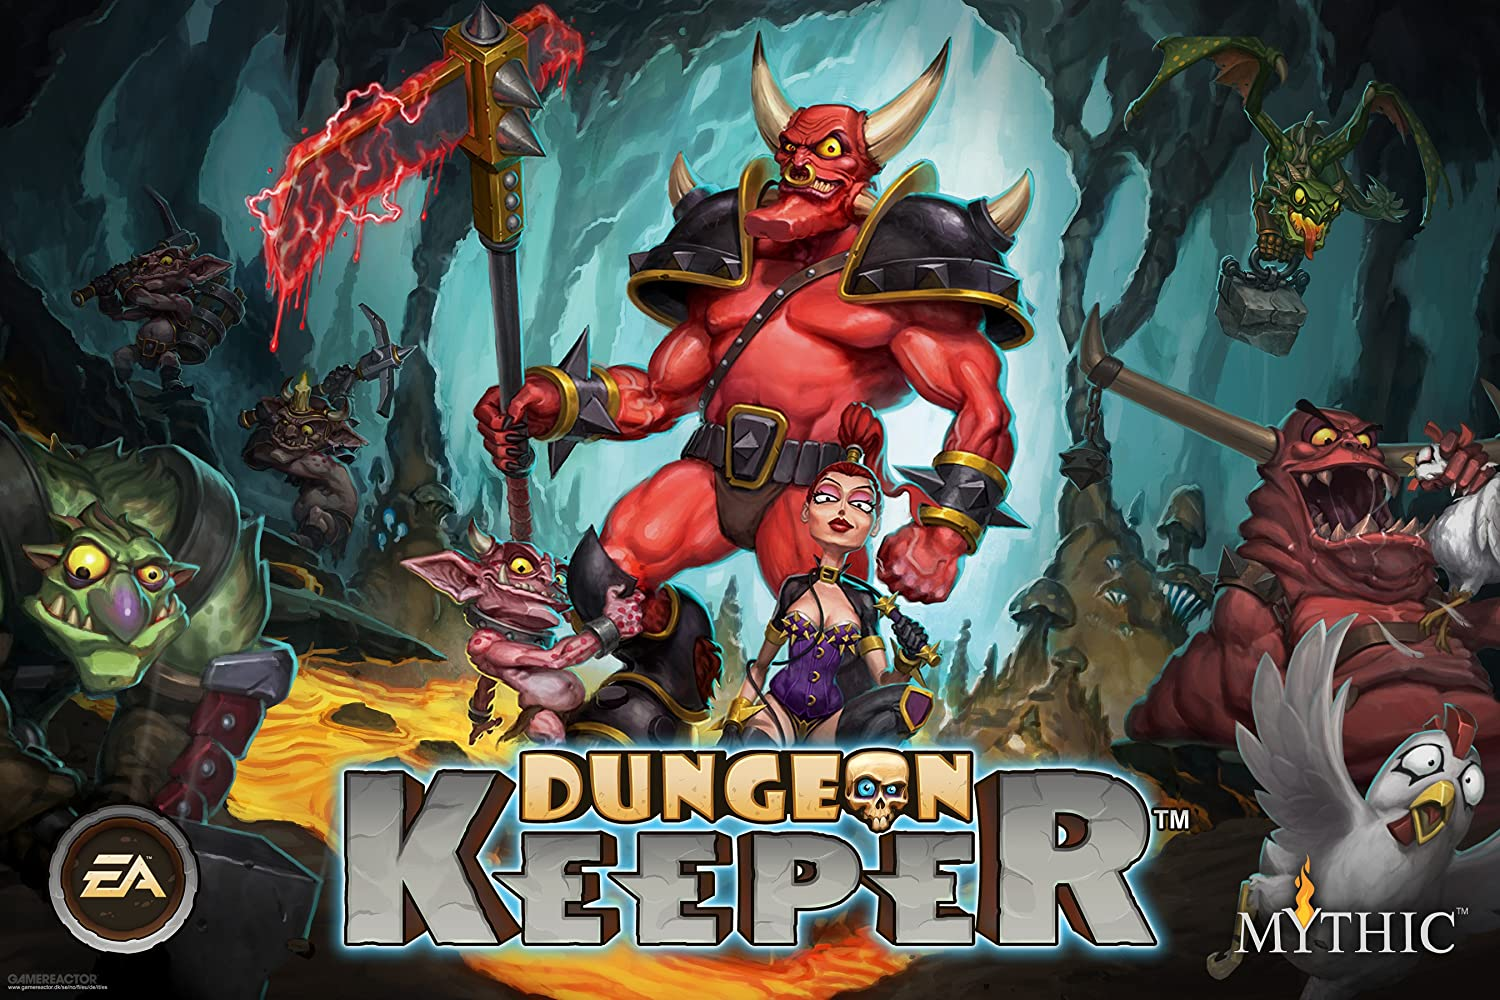 Dungeon Maker: Cheats, Tips, And Overall Rating